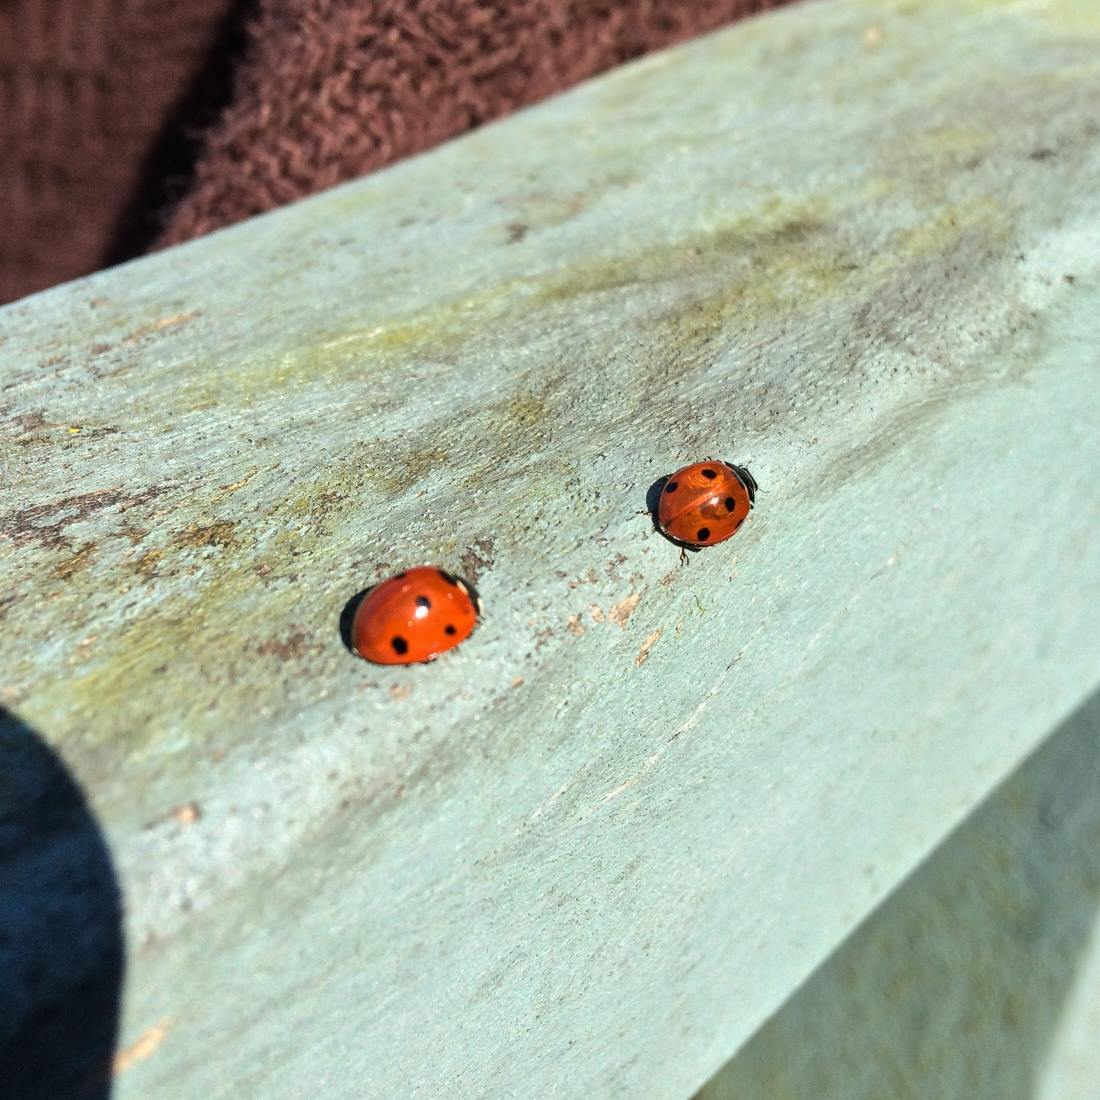 nature-insects-ladybirds-4422965